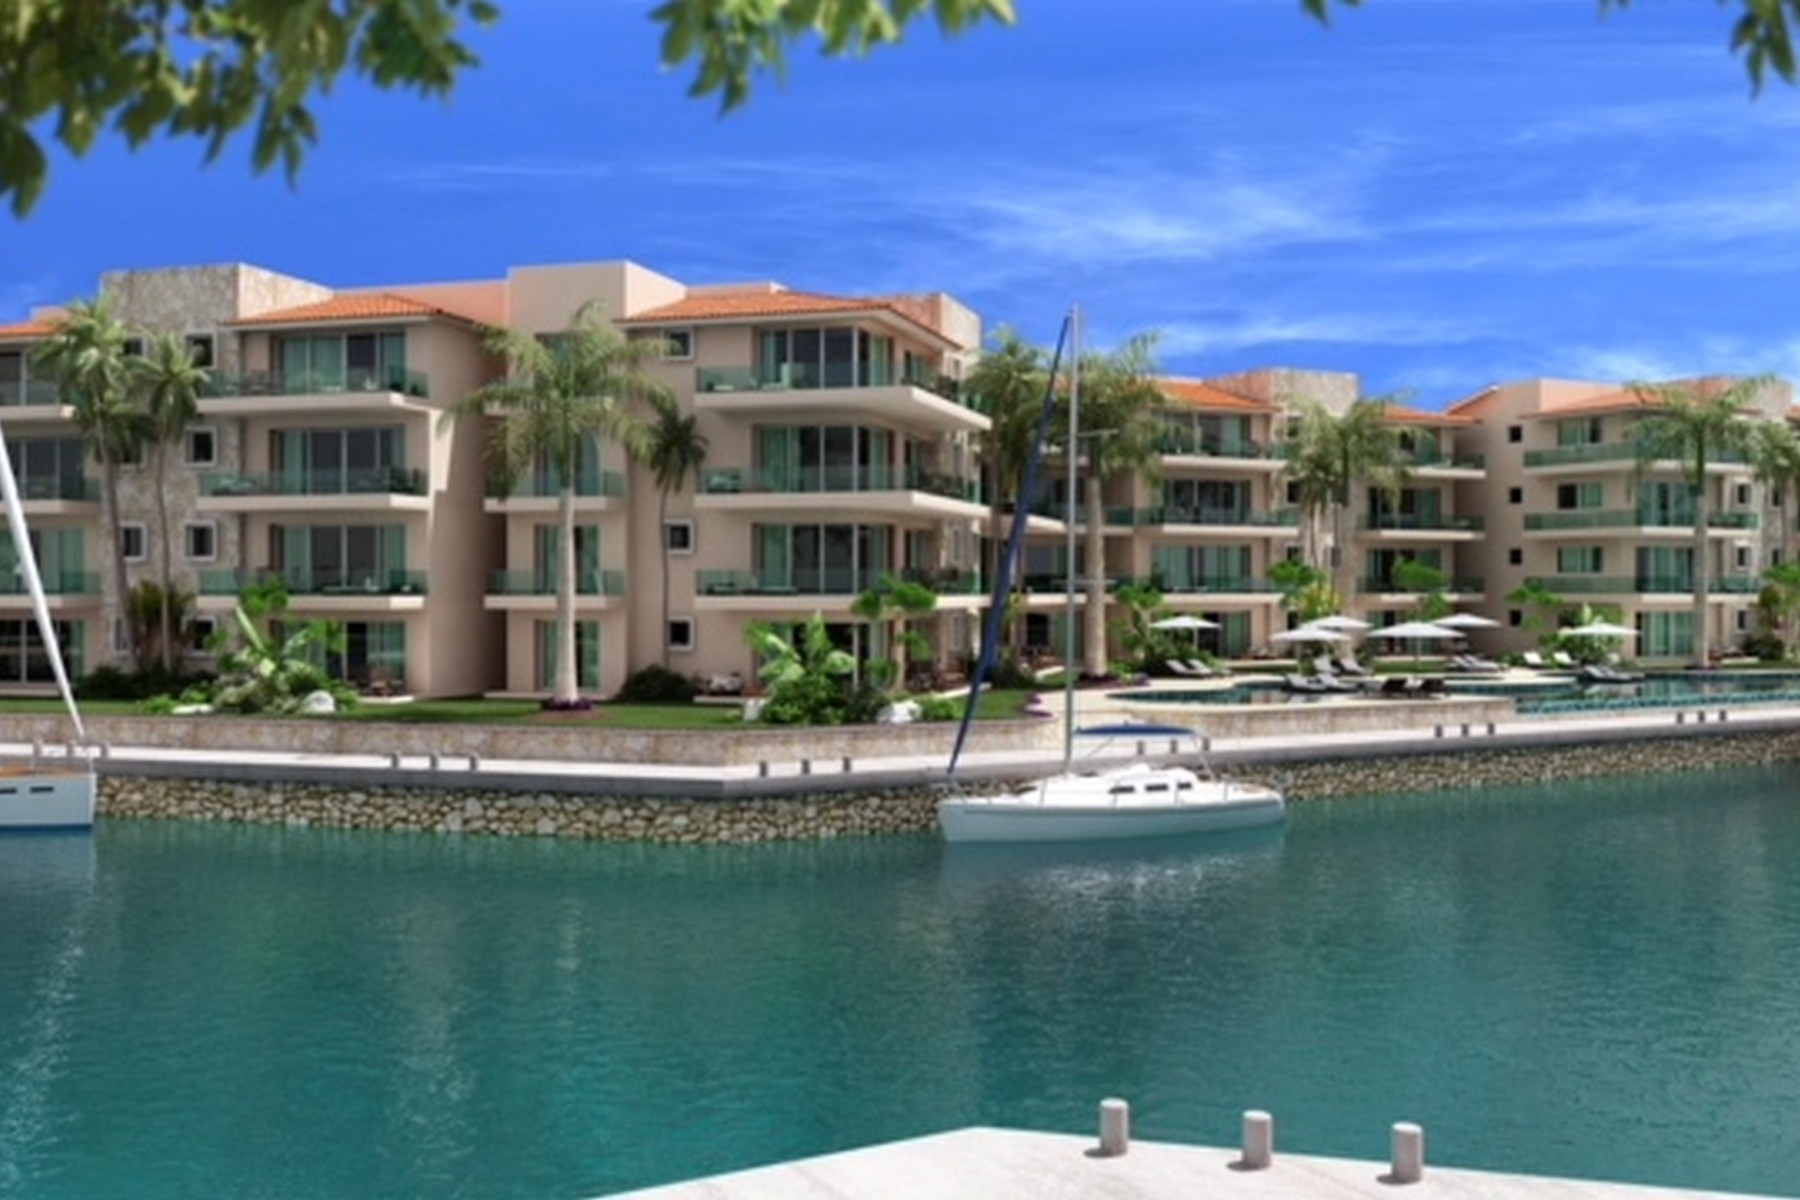 MARINA AND GOLF COURSE CONDOMINIUM